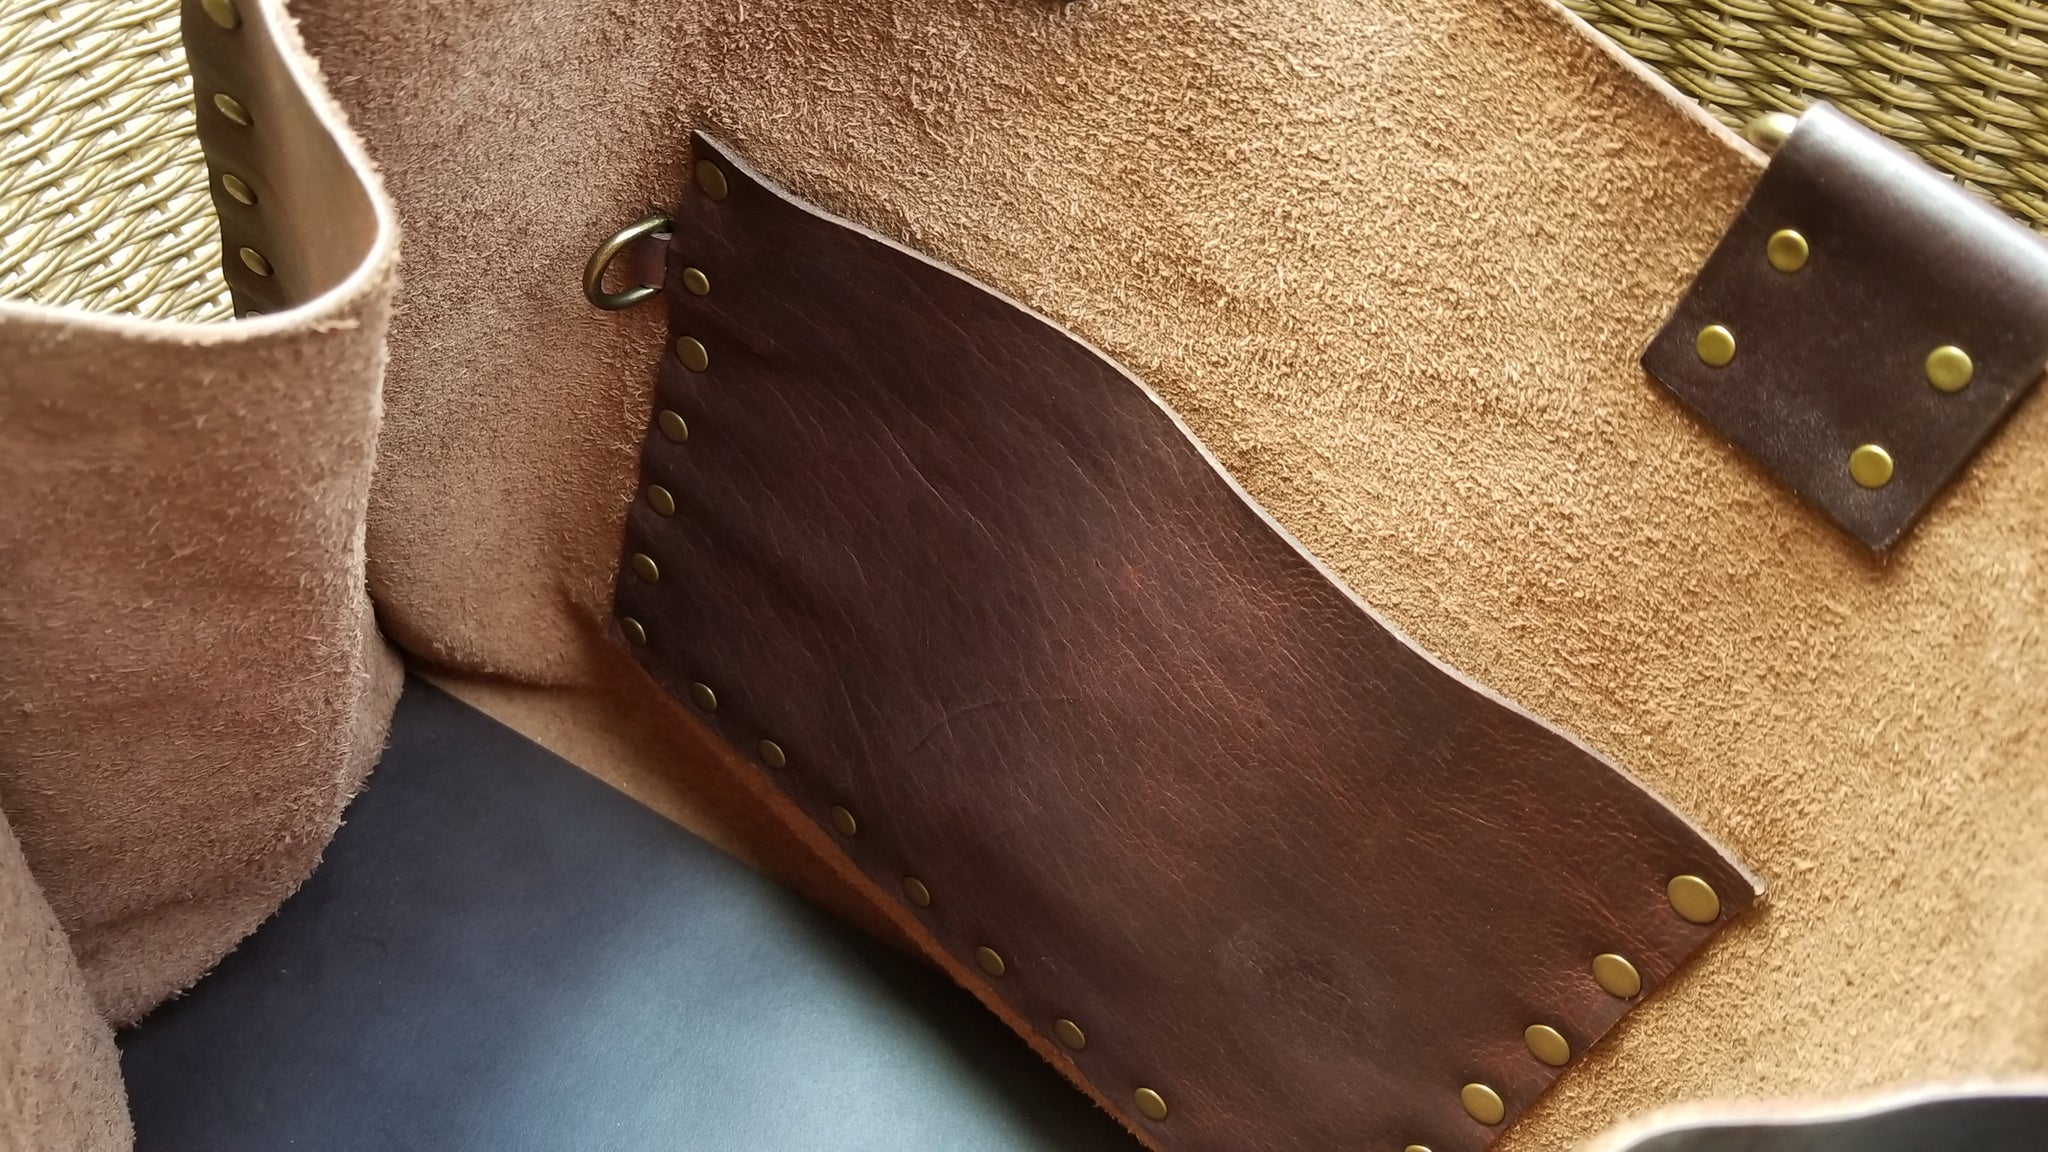 interior pocket of Malia leather tote bag carry all in canela navajo bison leather